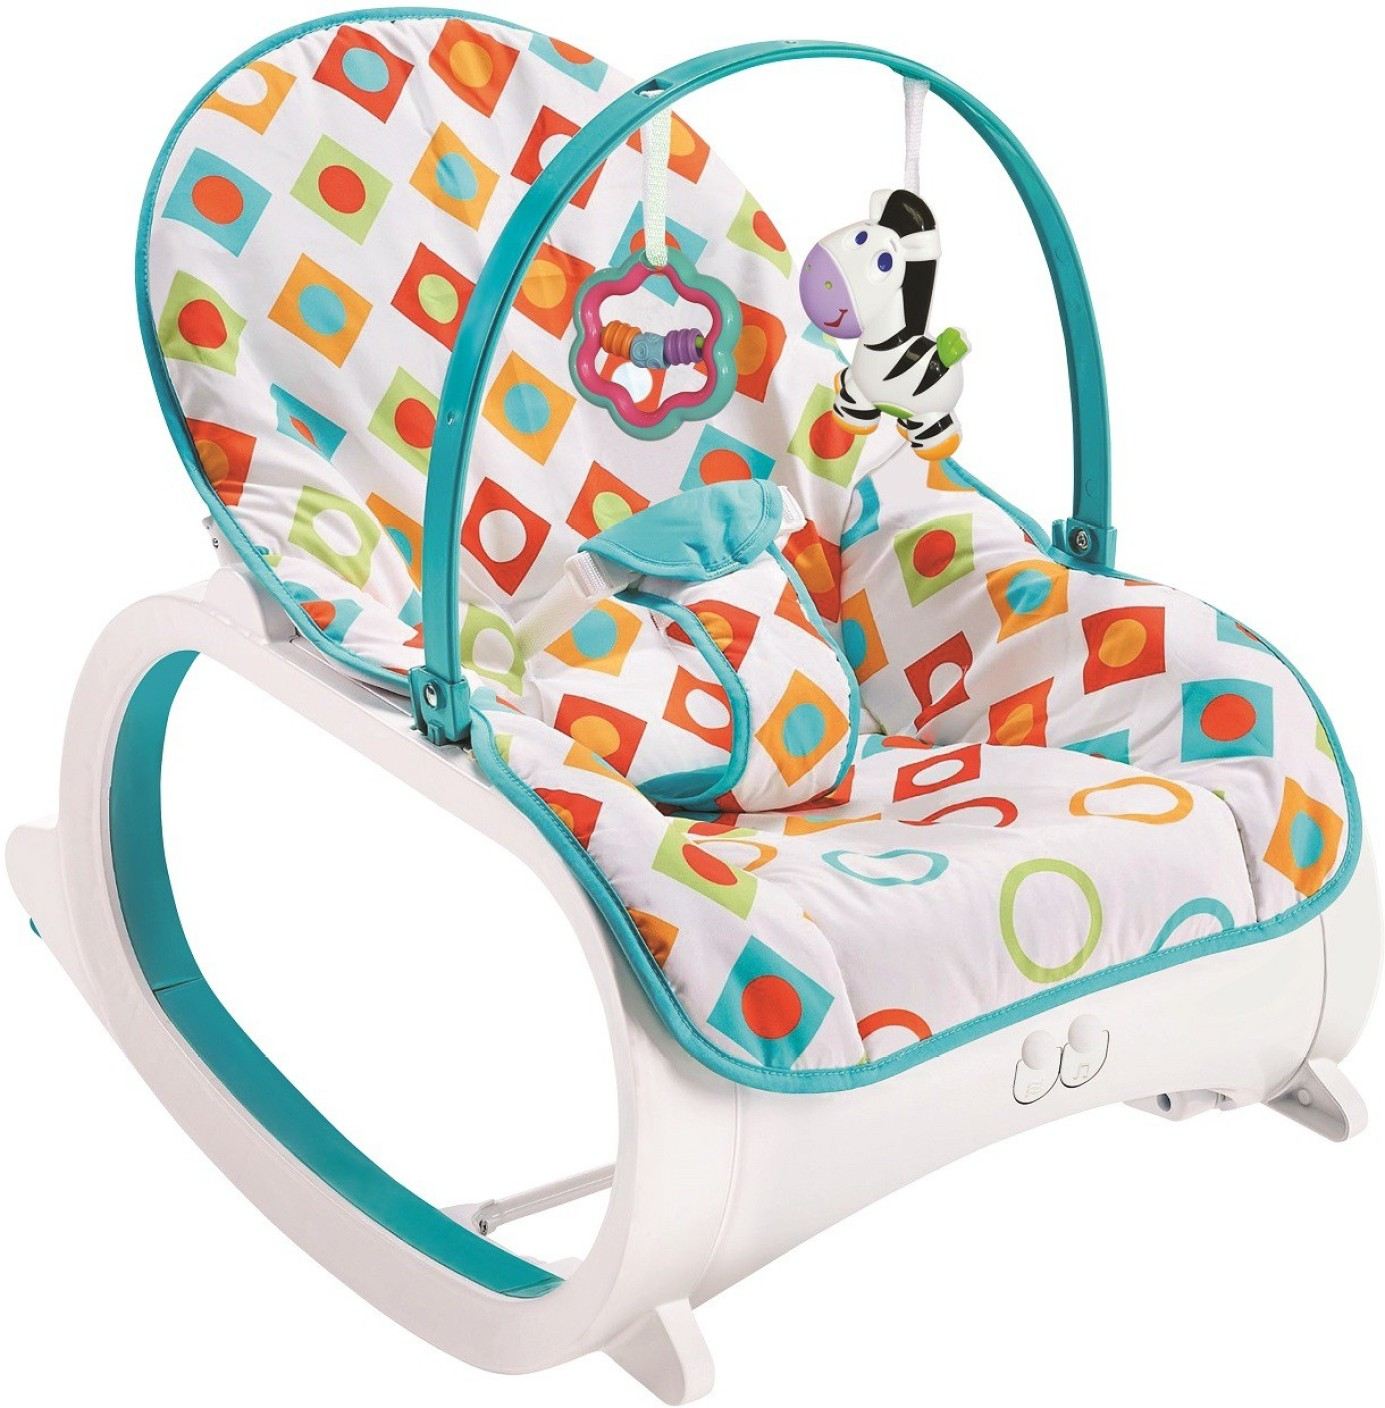 Fiddle Diddle Baby Bouncer Cum Rocker Buy Baby Care Products in